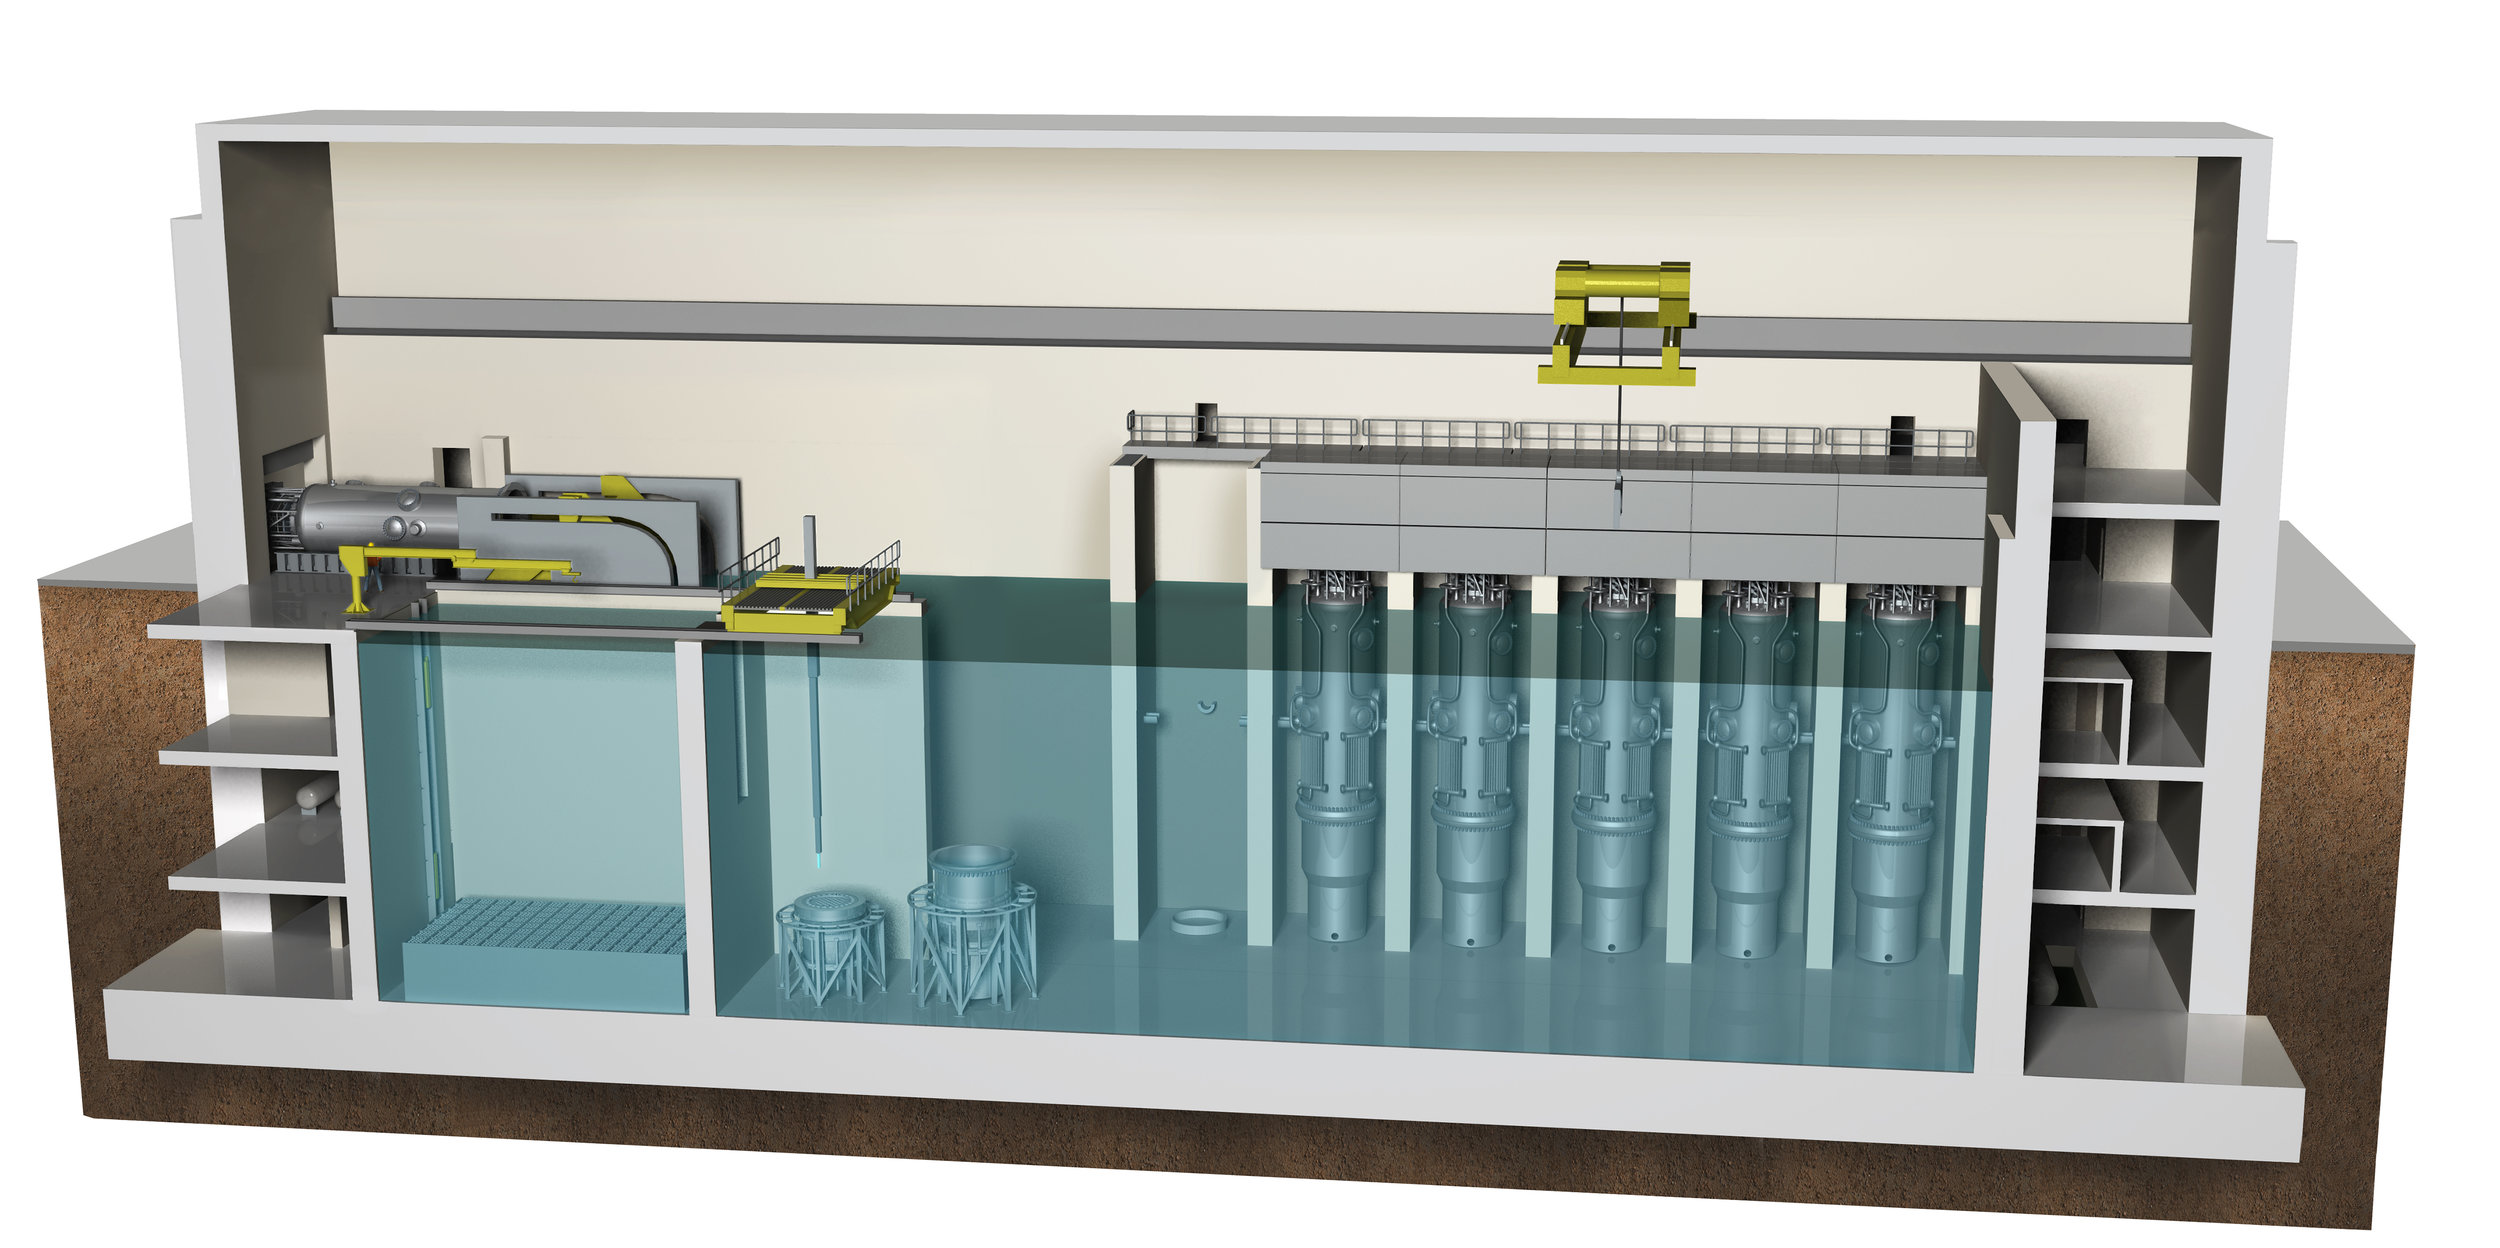 NuScale Reactor Building Cross-sectional